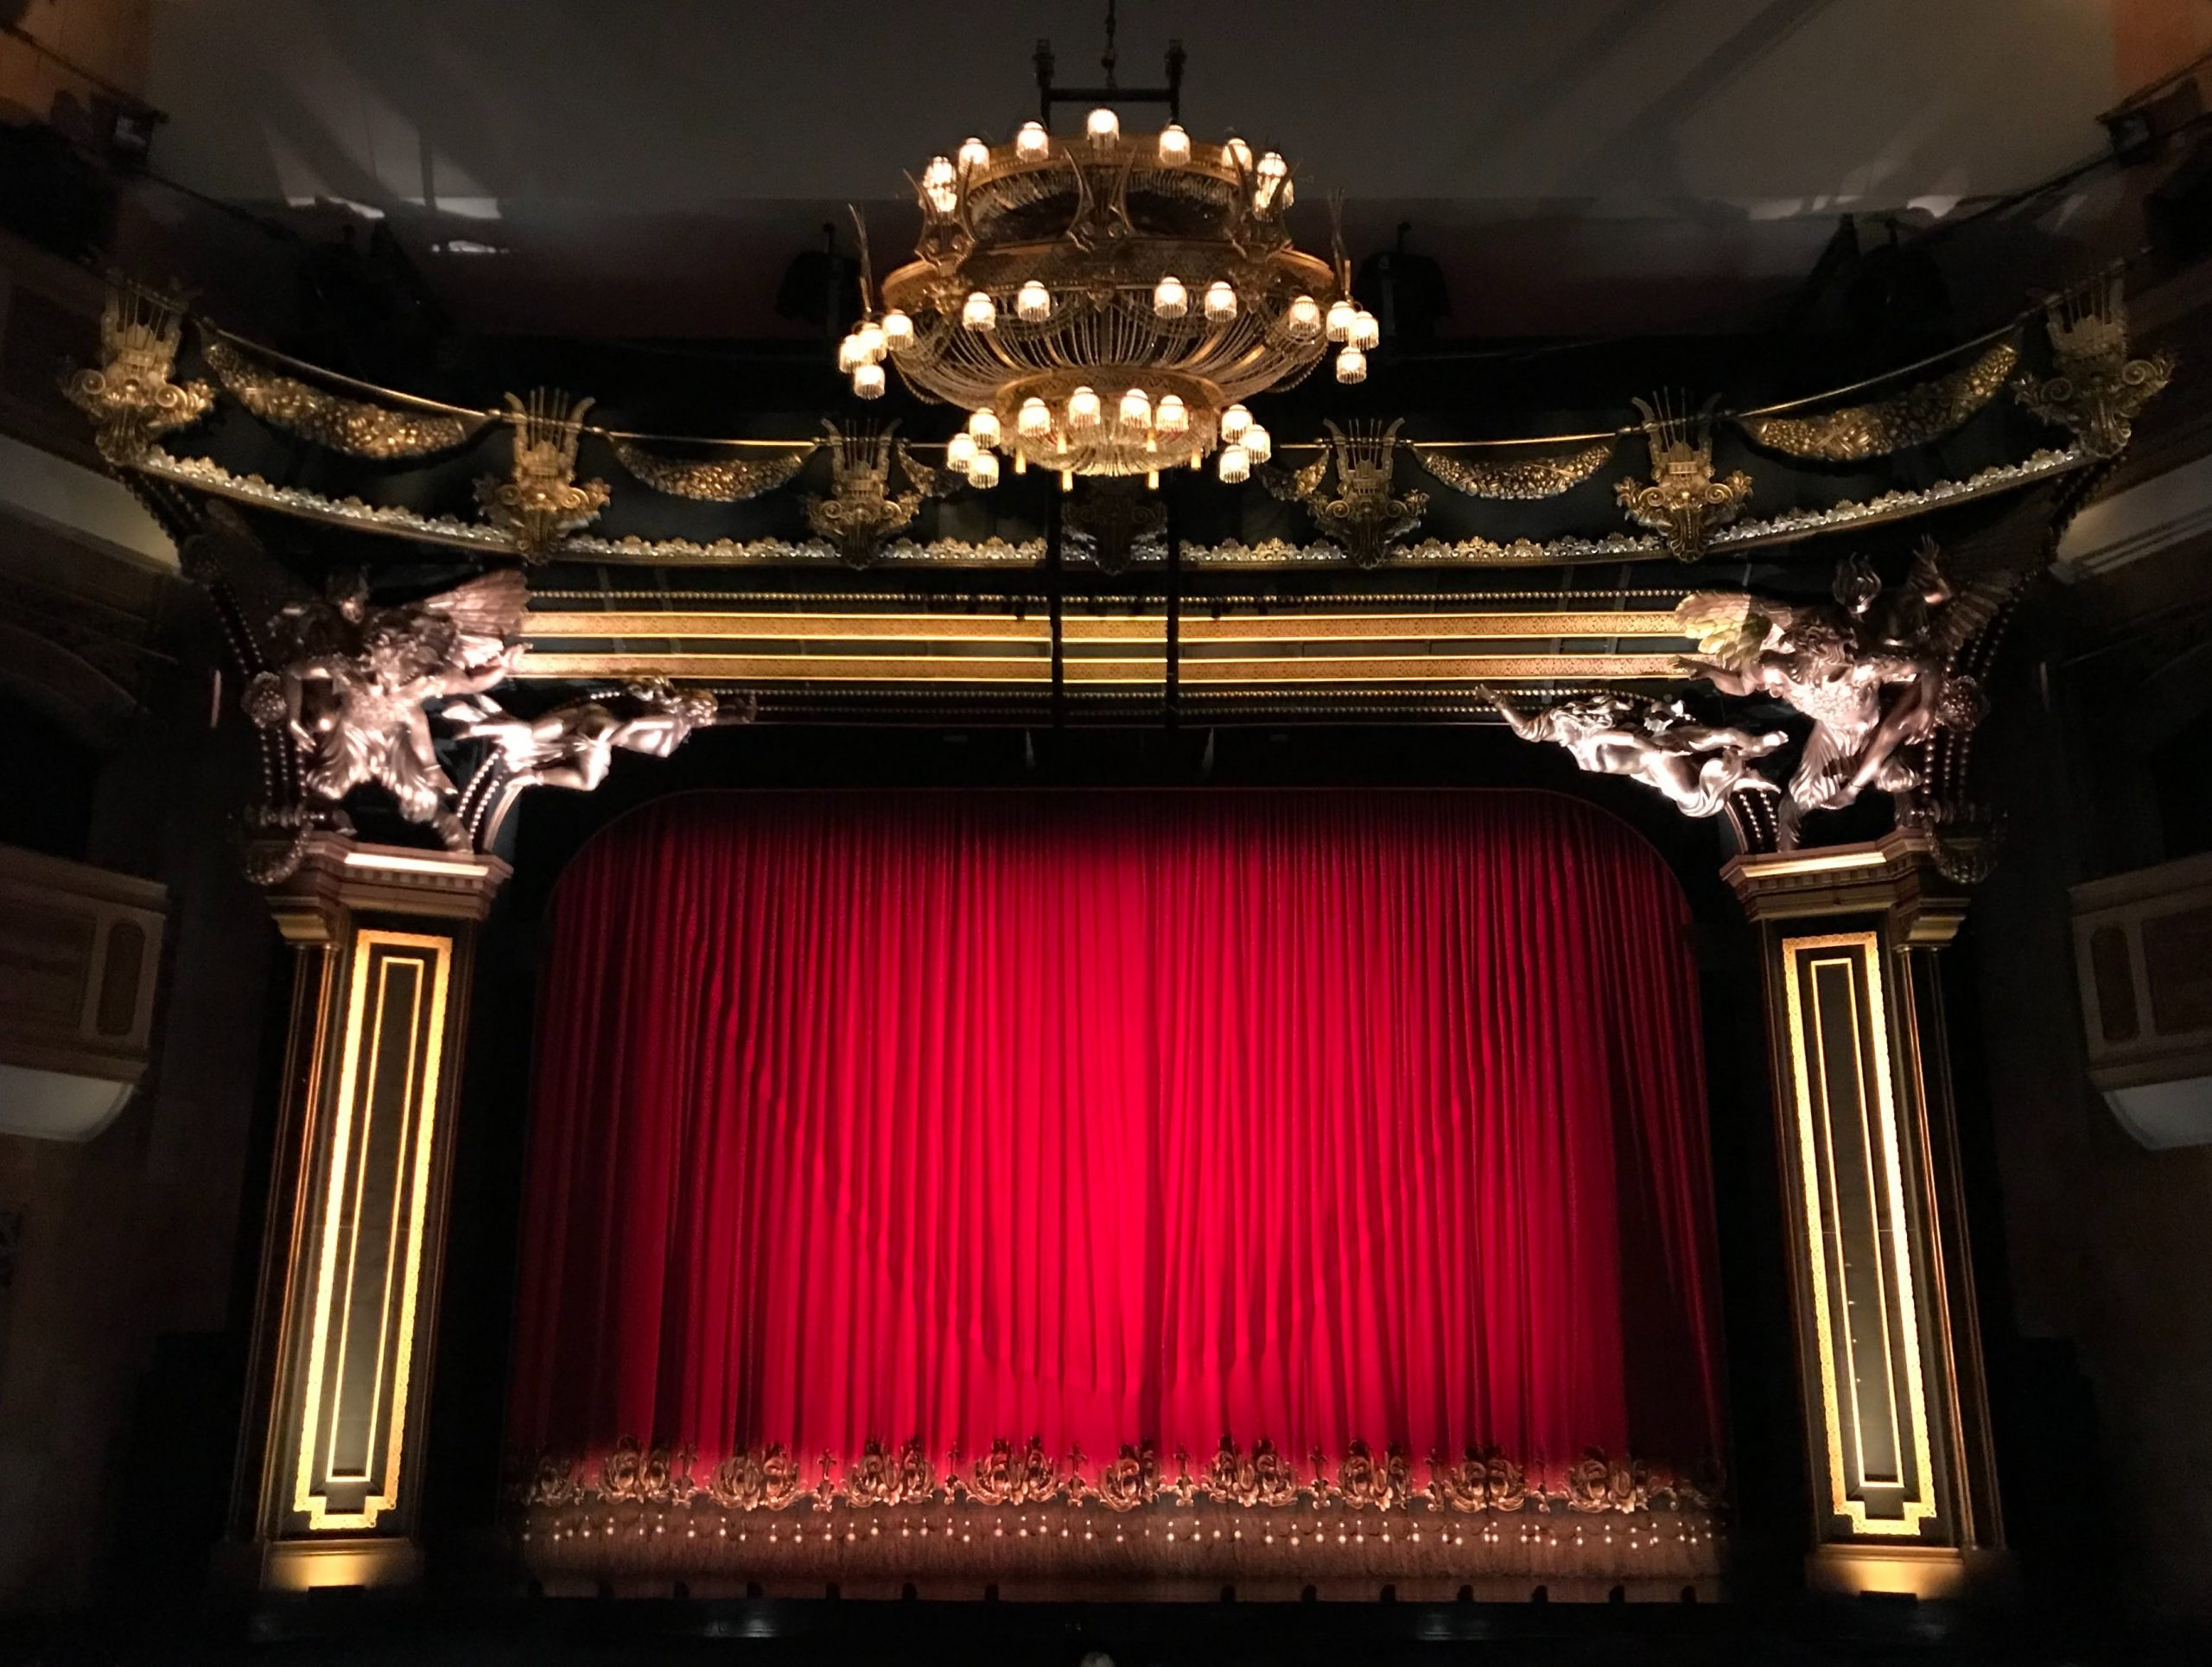 Image shows the red curtains of a theatre stage, with ornate surround and grand chandelier.